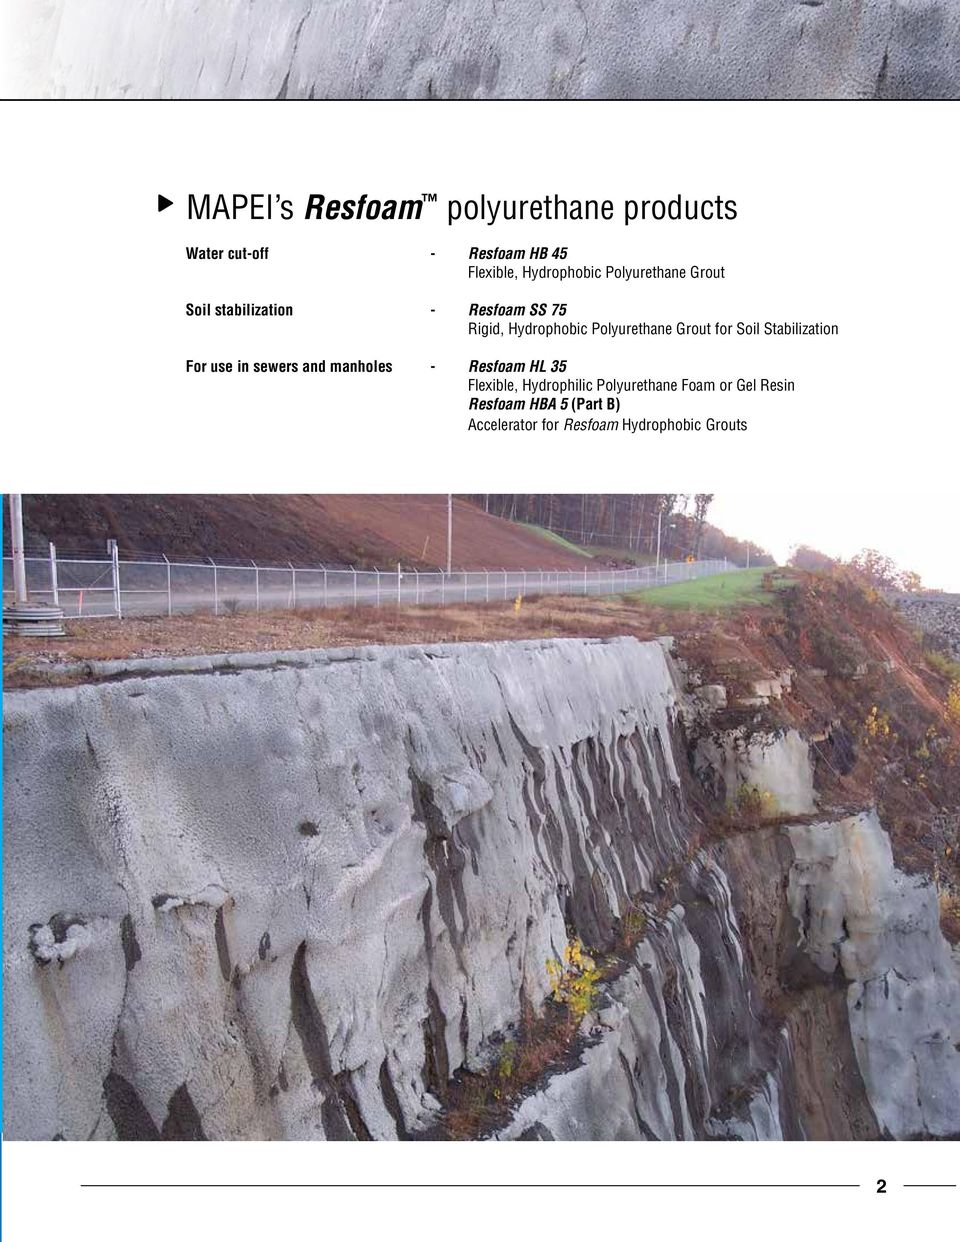 for Soil Stabilization For use in sewers and manholes - Resfoam HL 35 Flexible, Hydrophilic